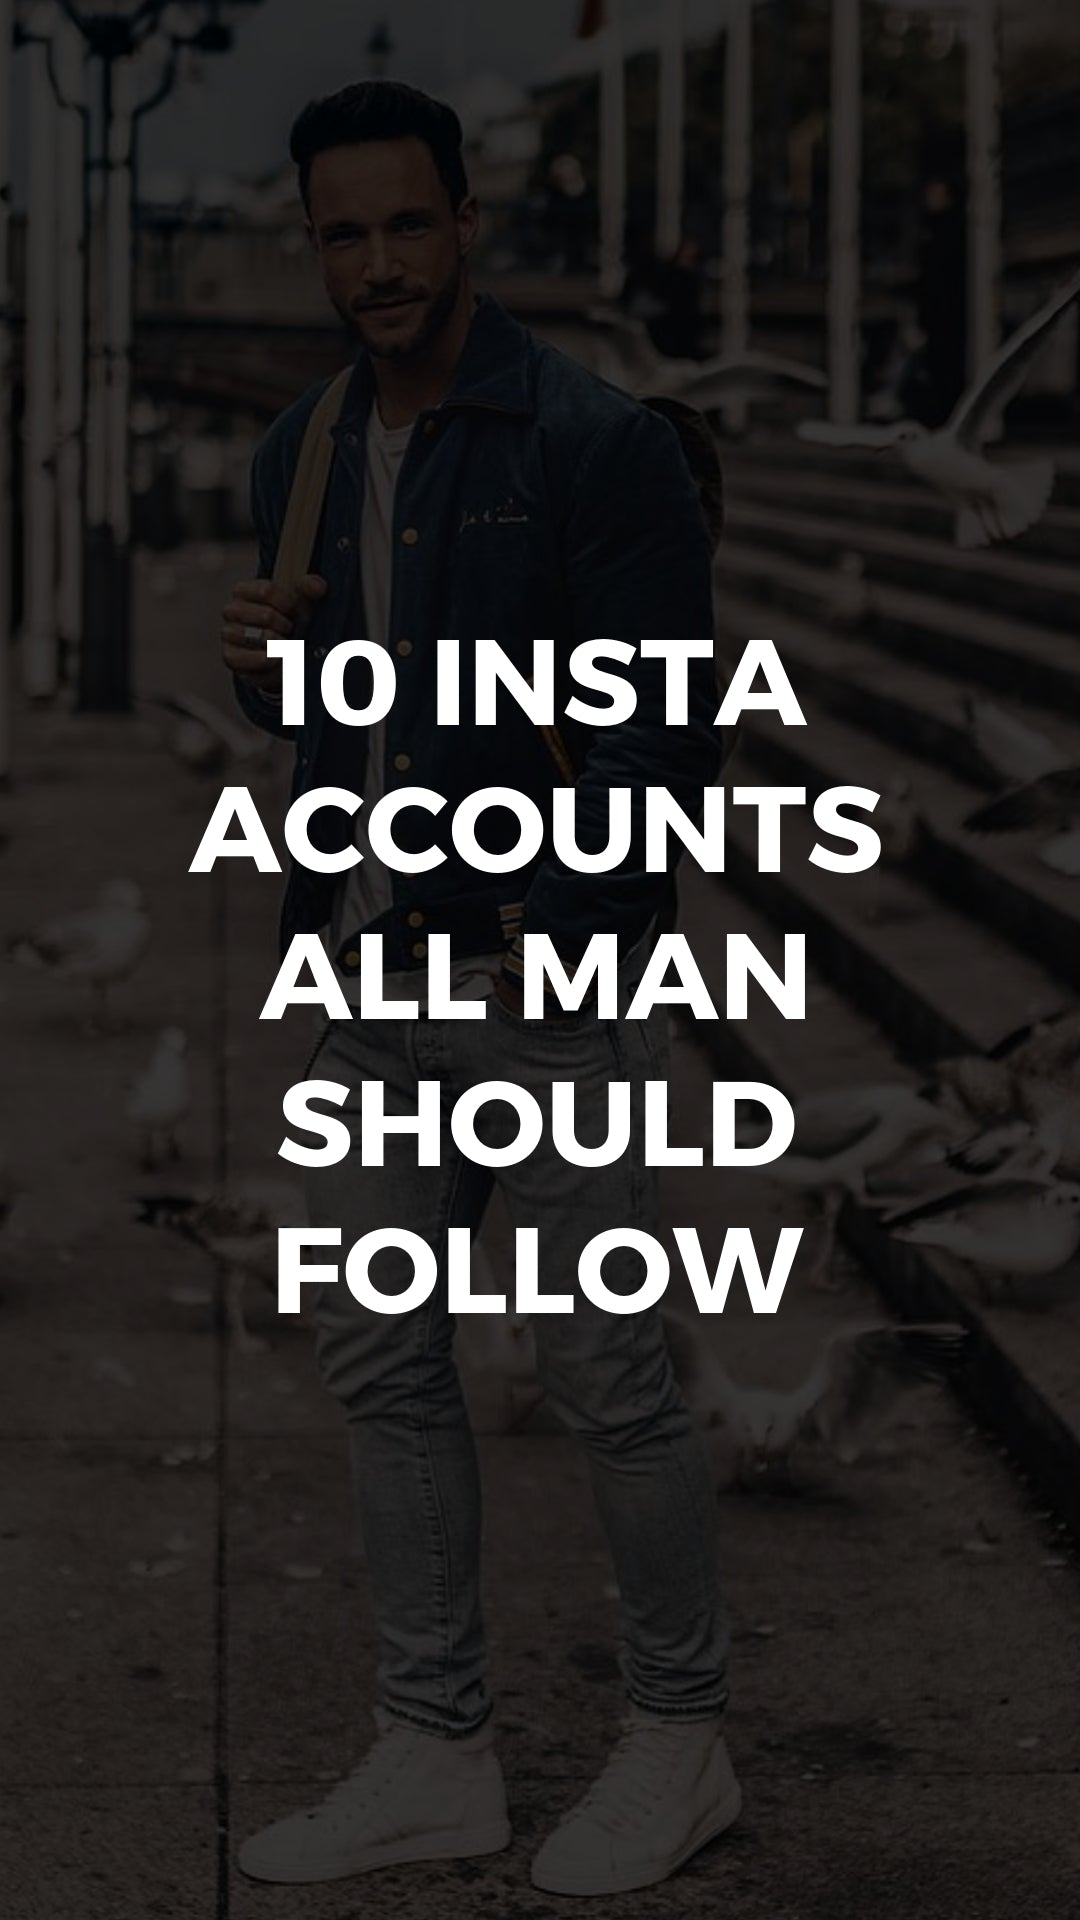 10 INSTA ACCOUNTS ALL MAN SHOULD FOLLOW #instagram #streetstyle